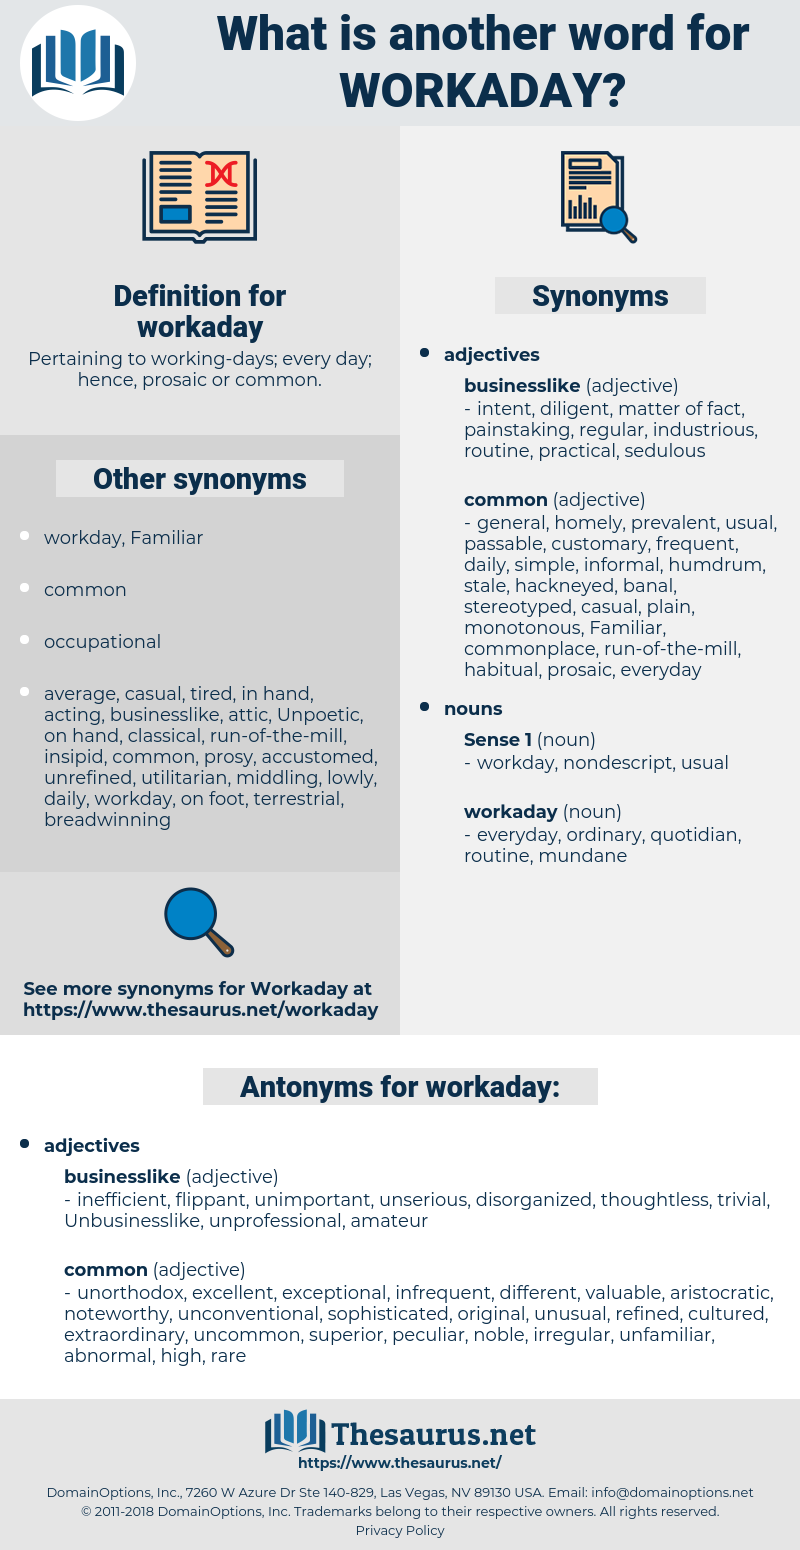 workaday, synonym workaday, another word for workaday, words like workaday, thesaurus workaday